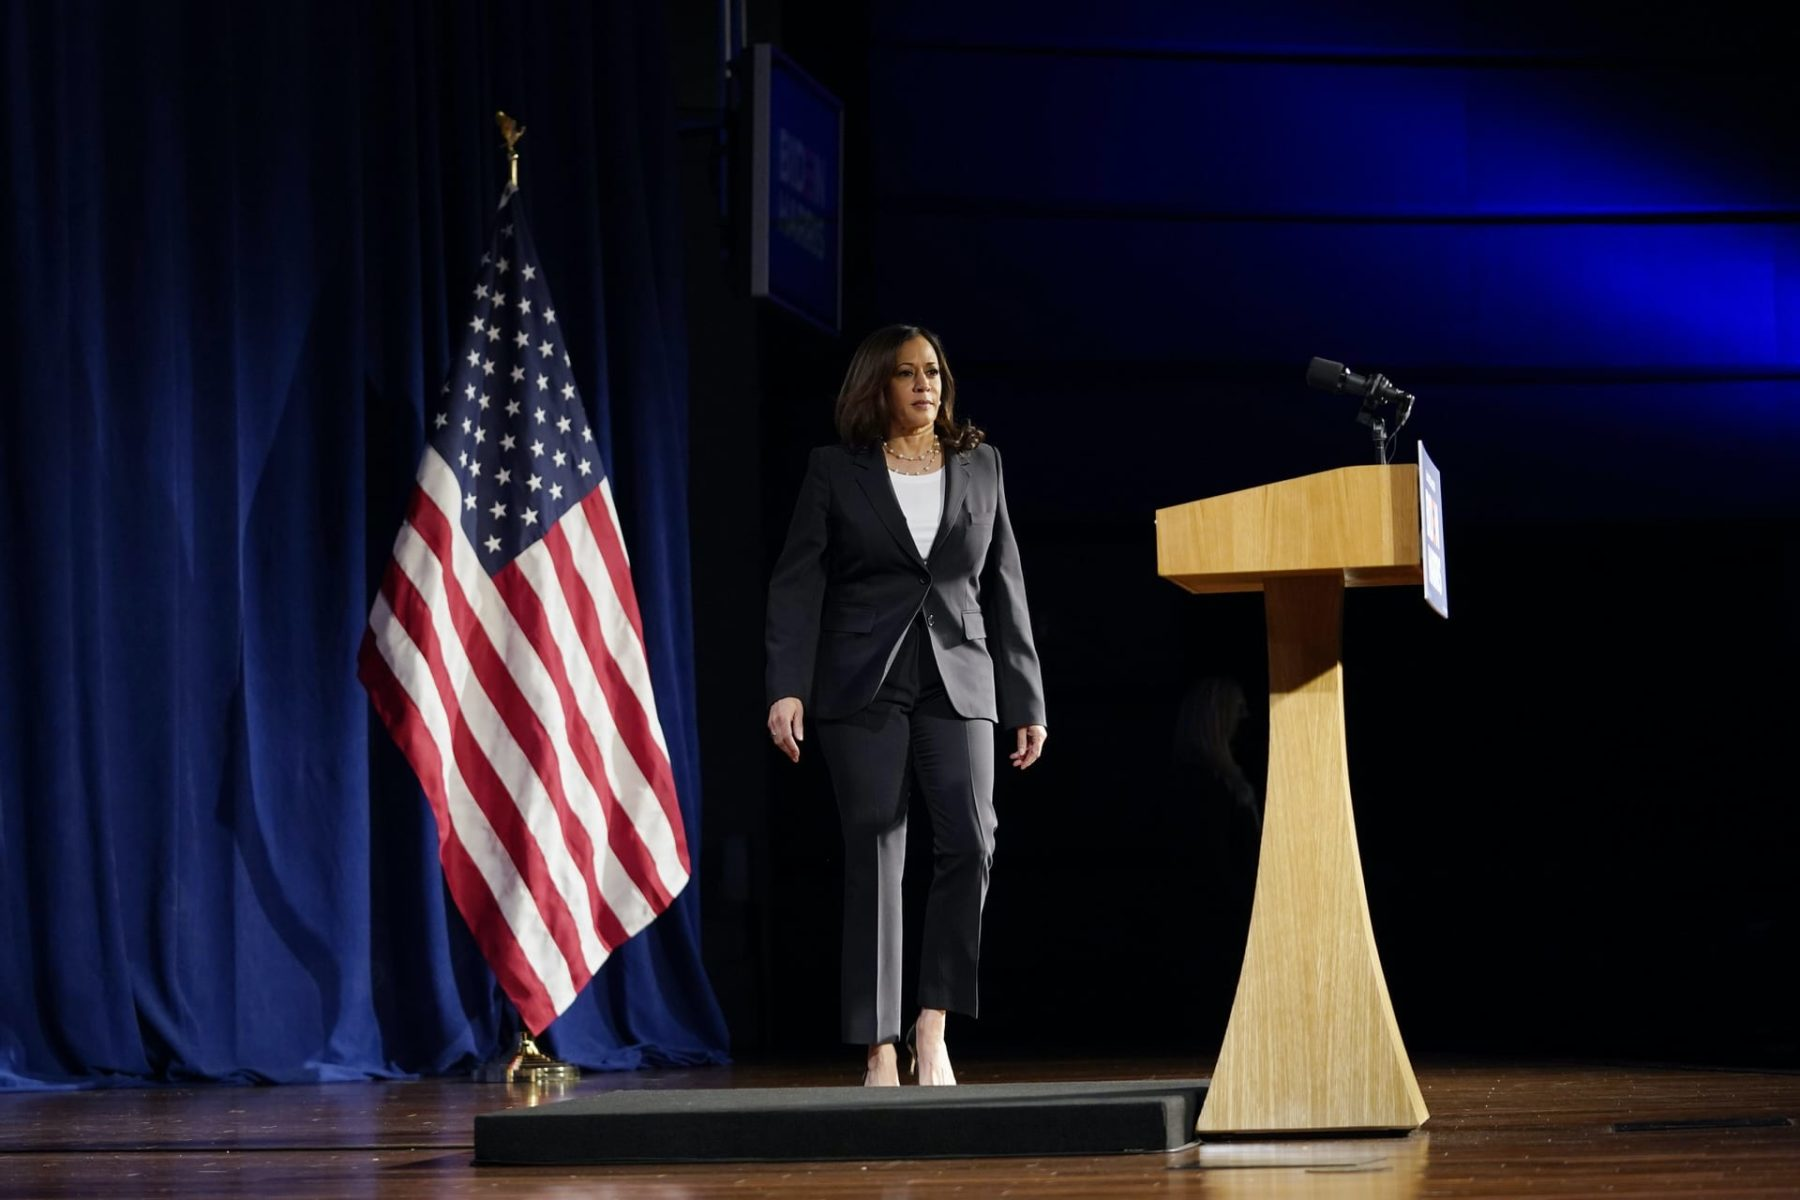 Sen. Kamala Harris, photographed here in Washington in August, will debate Mike Pence on October 7, 2020.